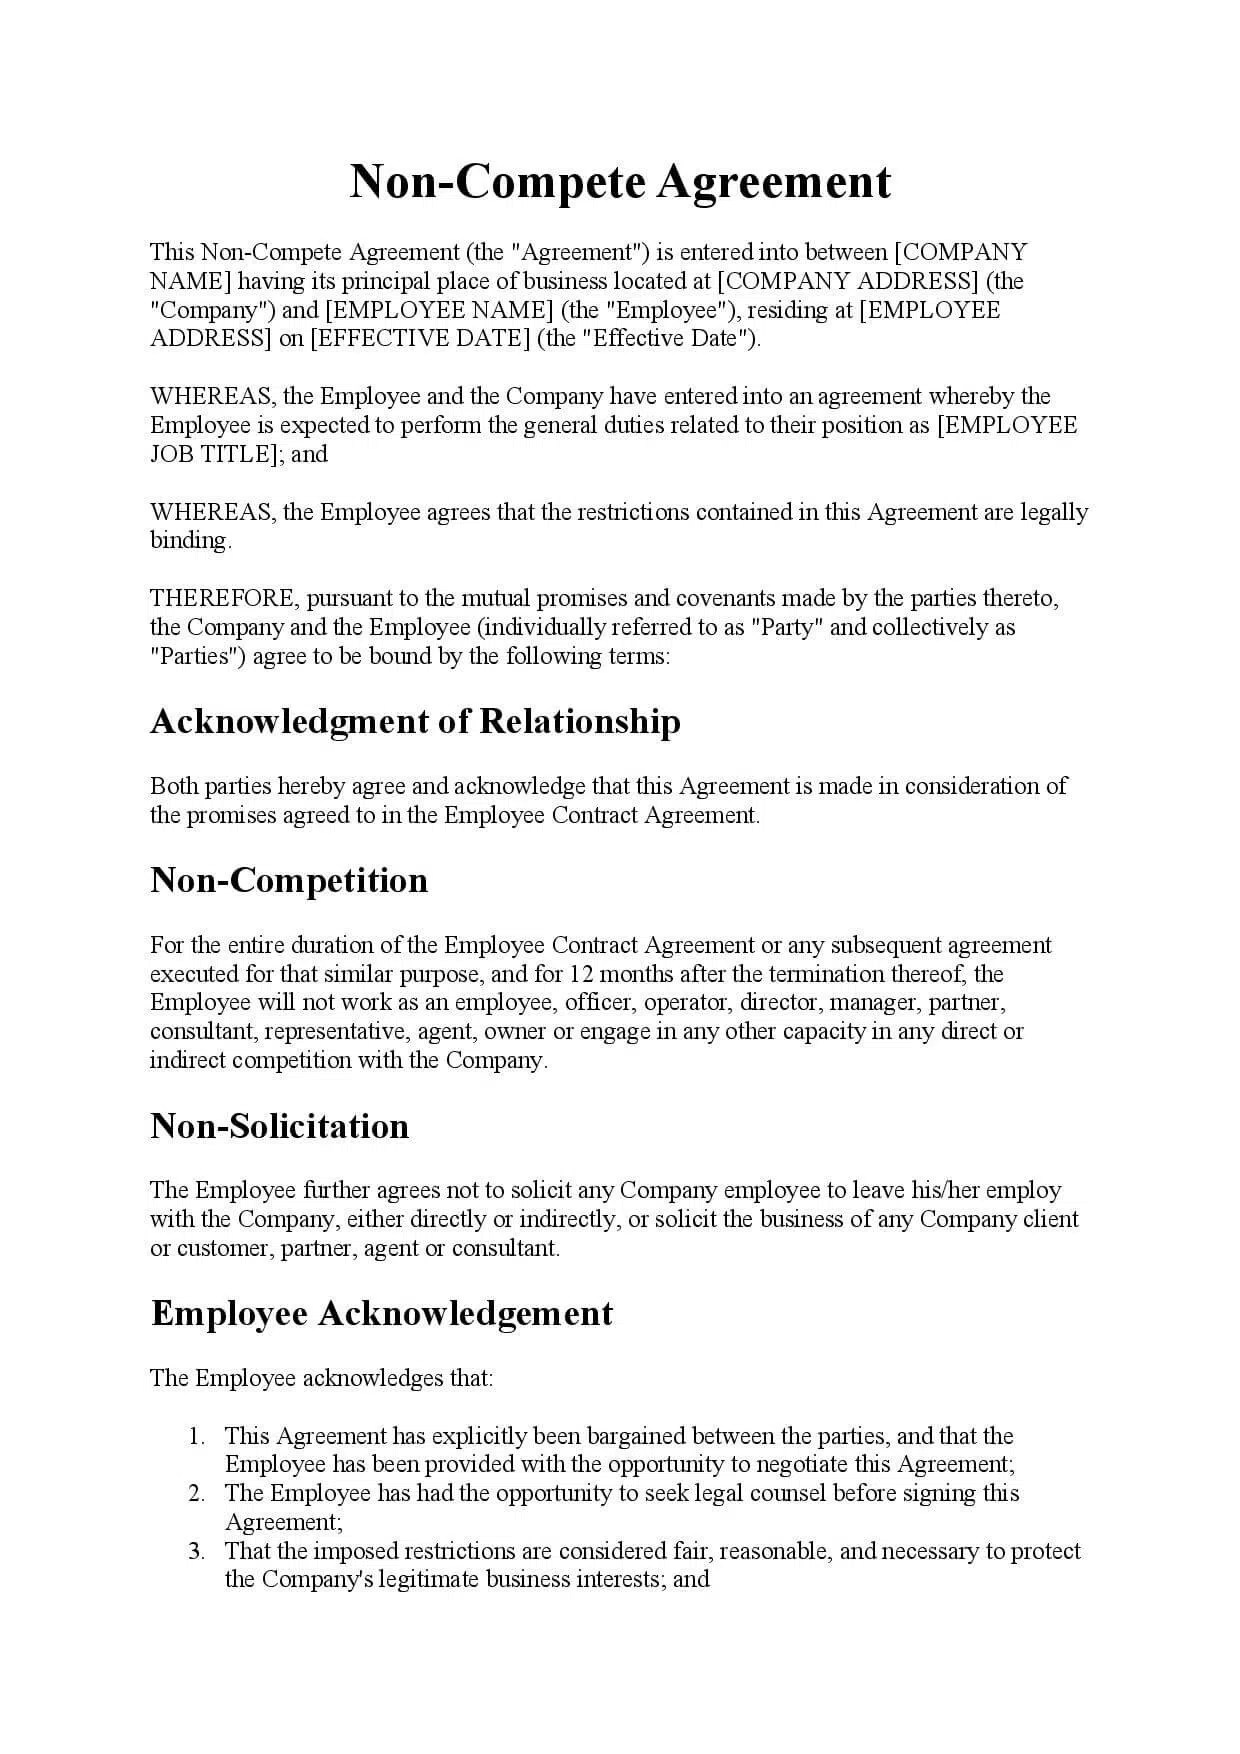 Employment with company, solicited or identified as a business prospect by company. Non Compete Agreement Template Free Download Easy Legal Docs